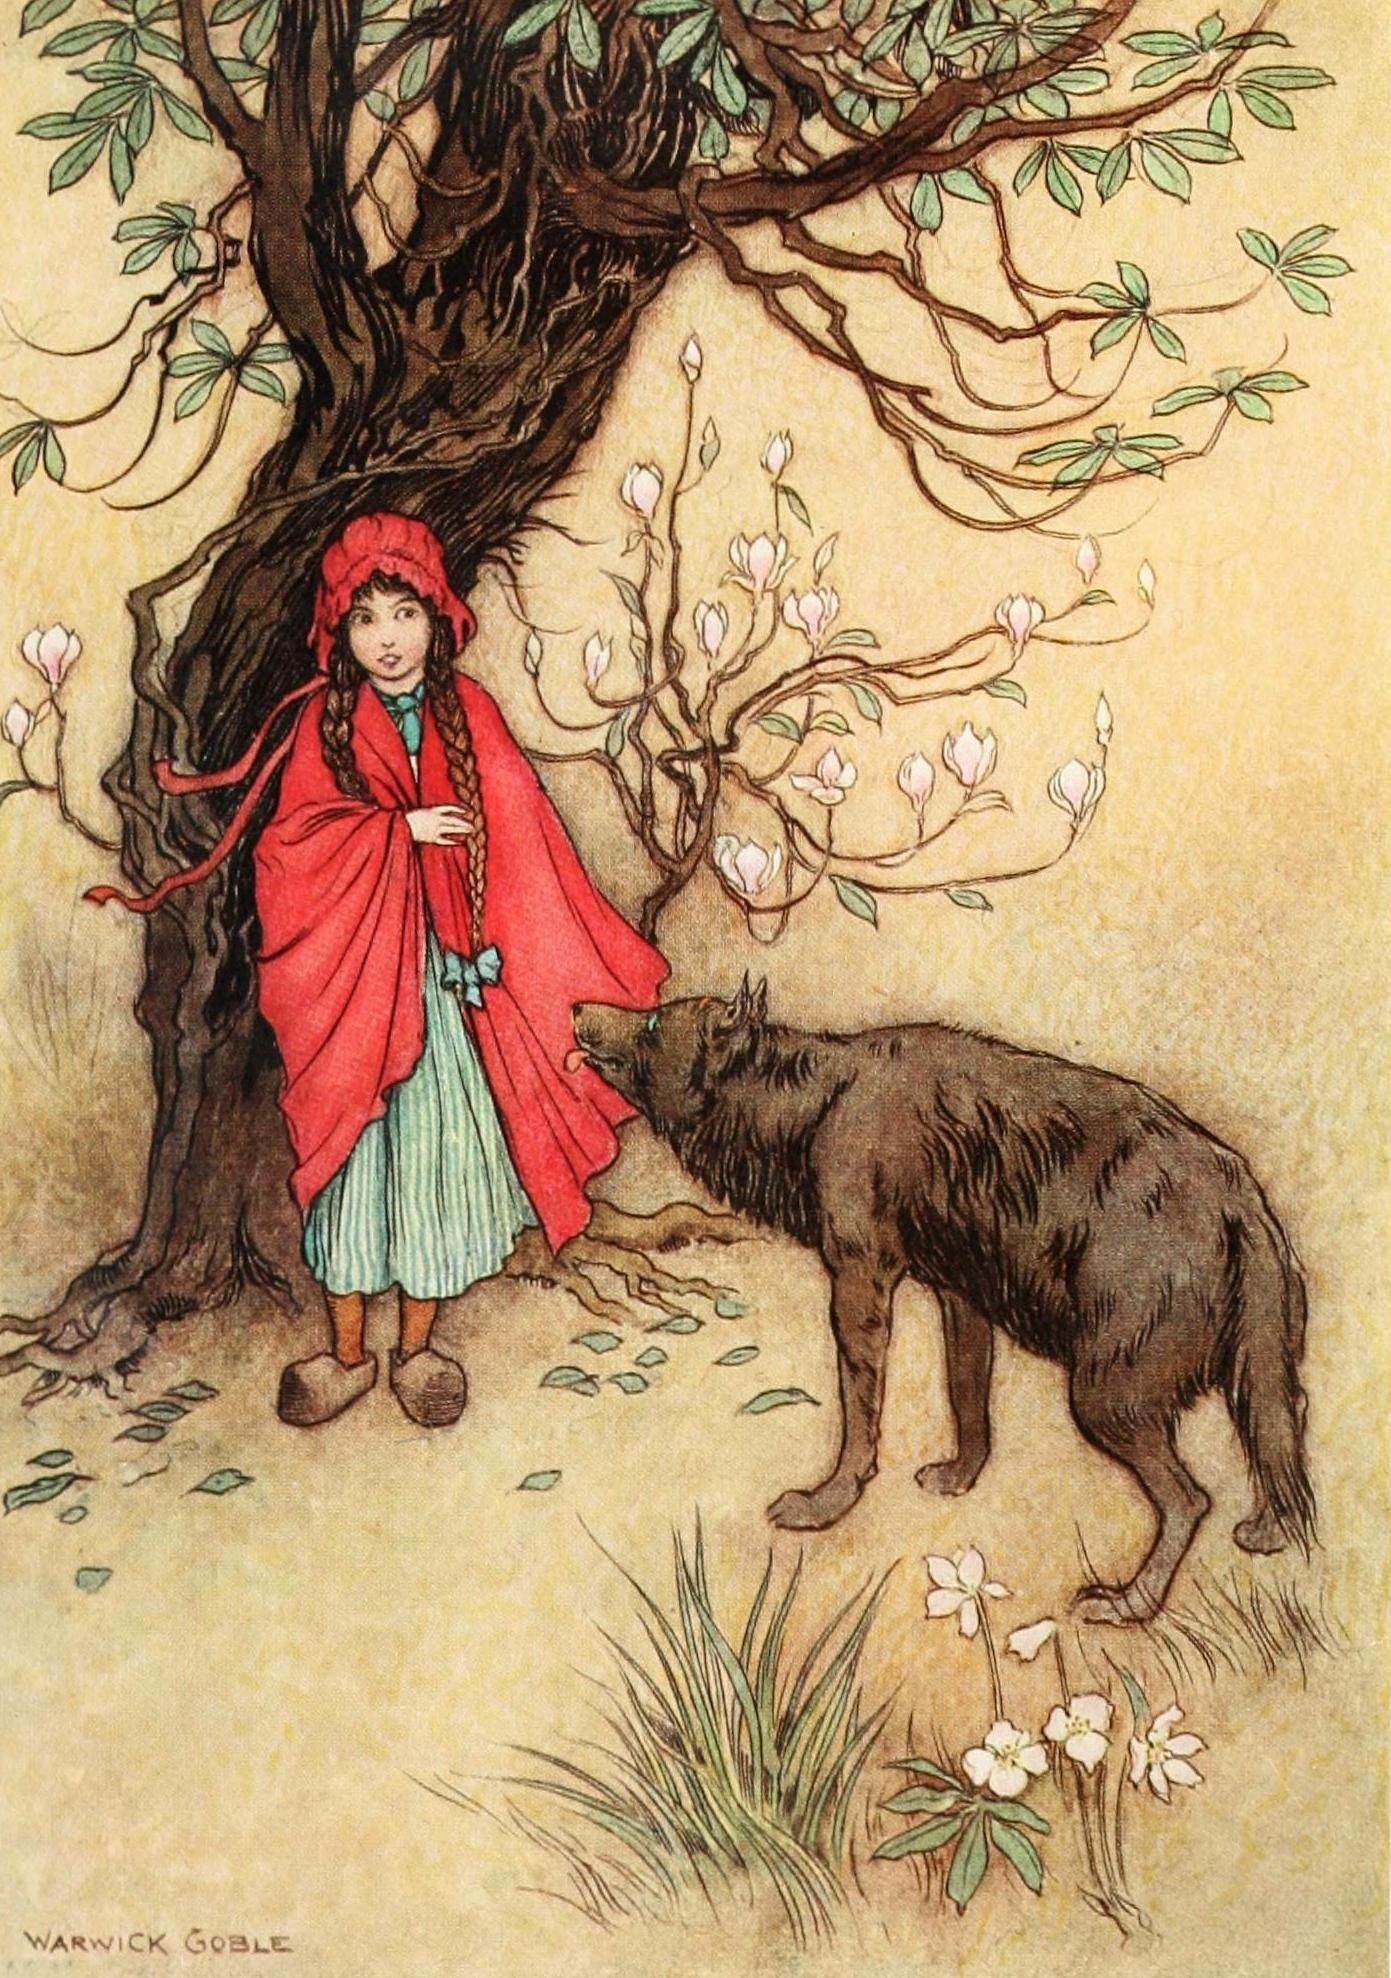 Warwick Goble - Red Riding Hood